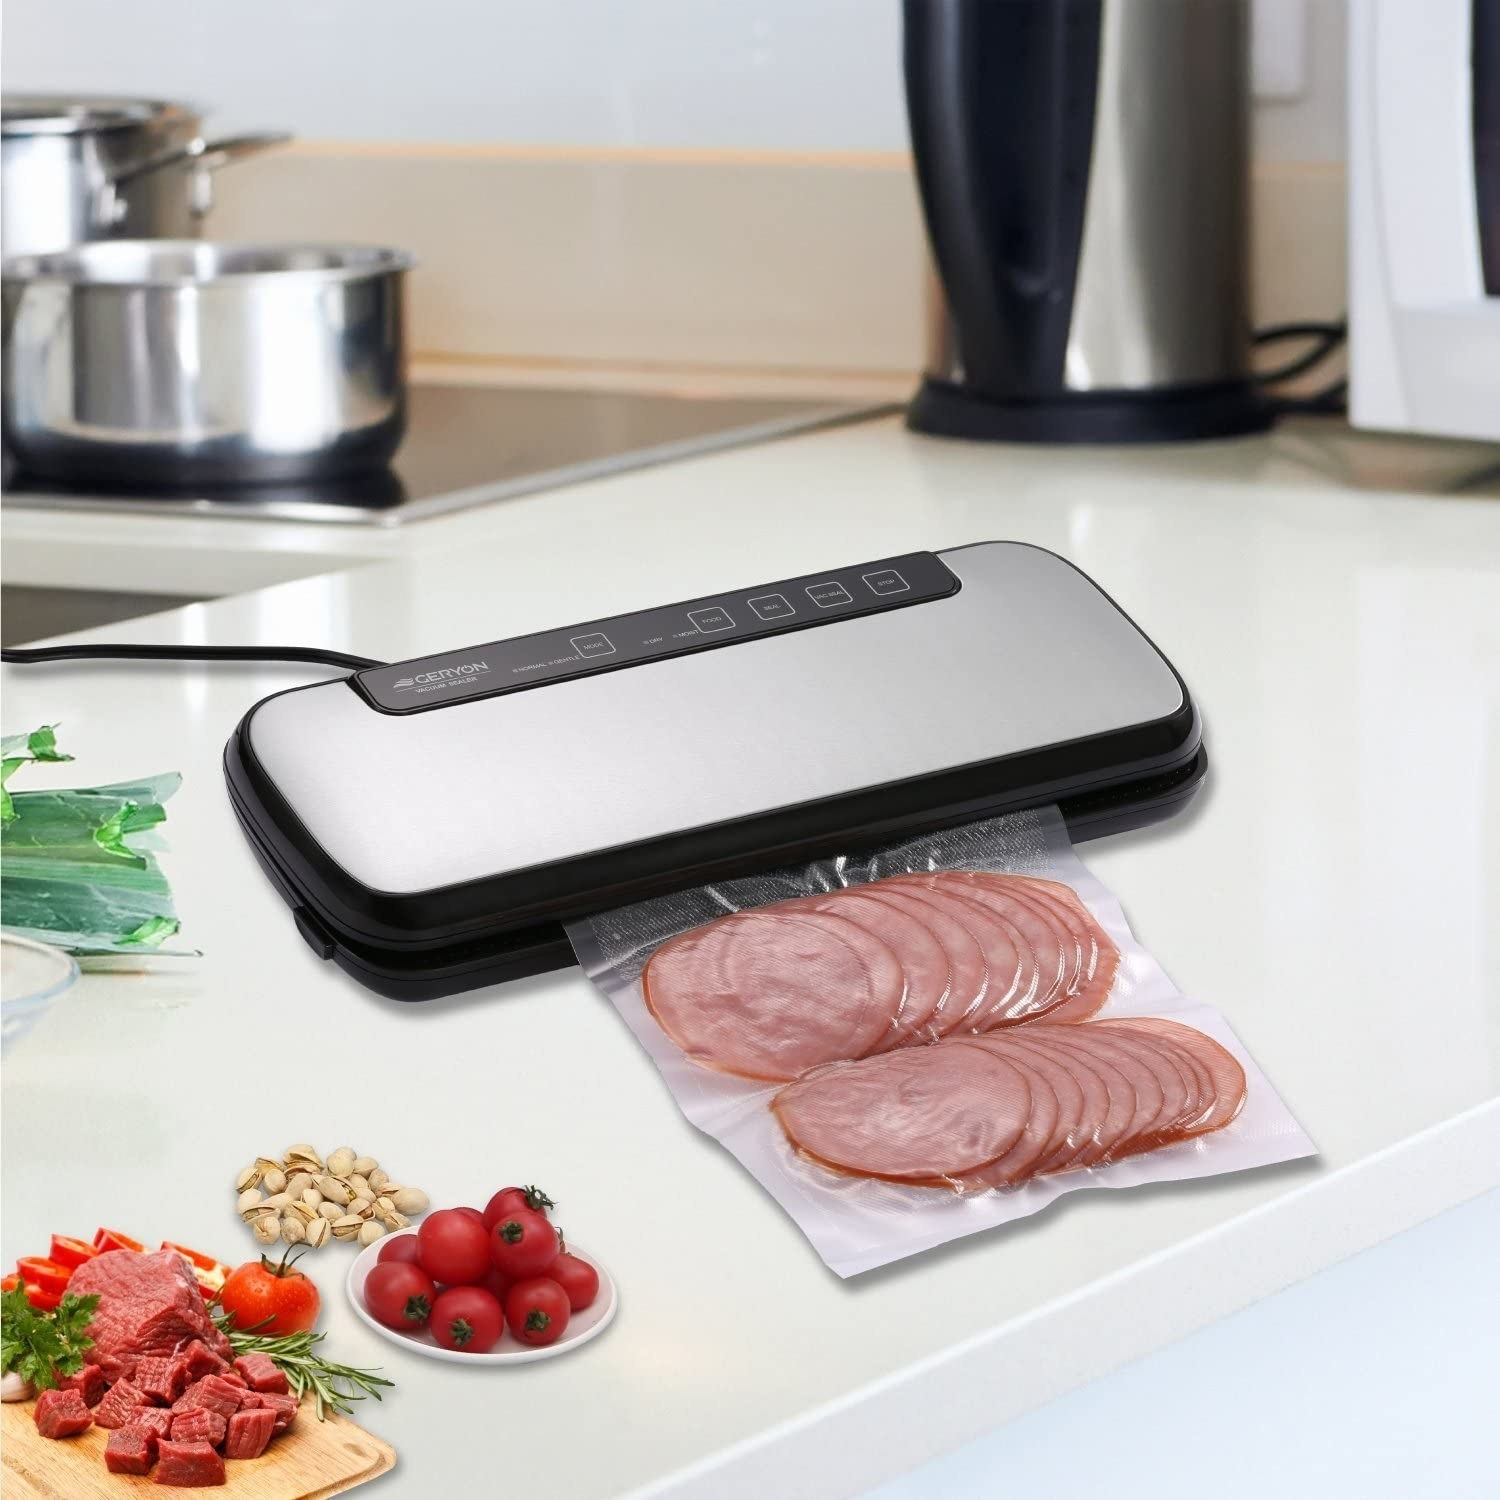 A food-sealing machine next to a pack of vacuum-sealed ham slices.